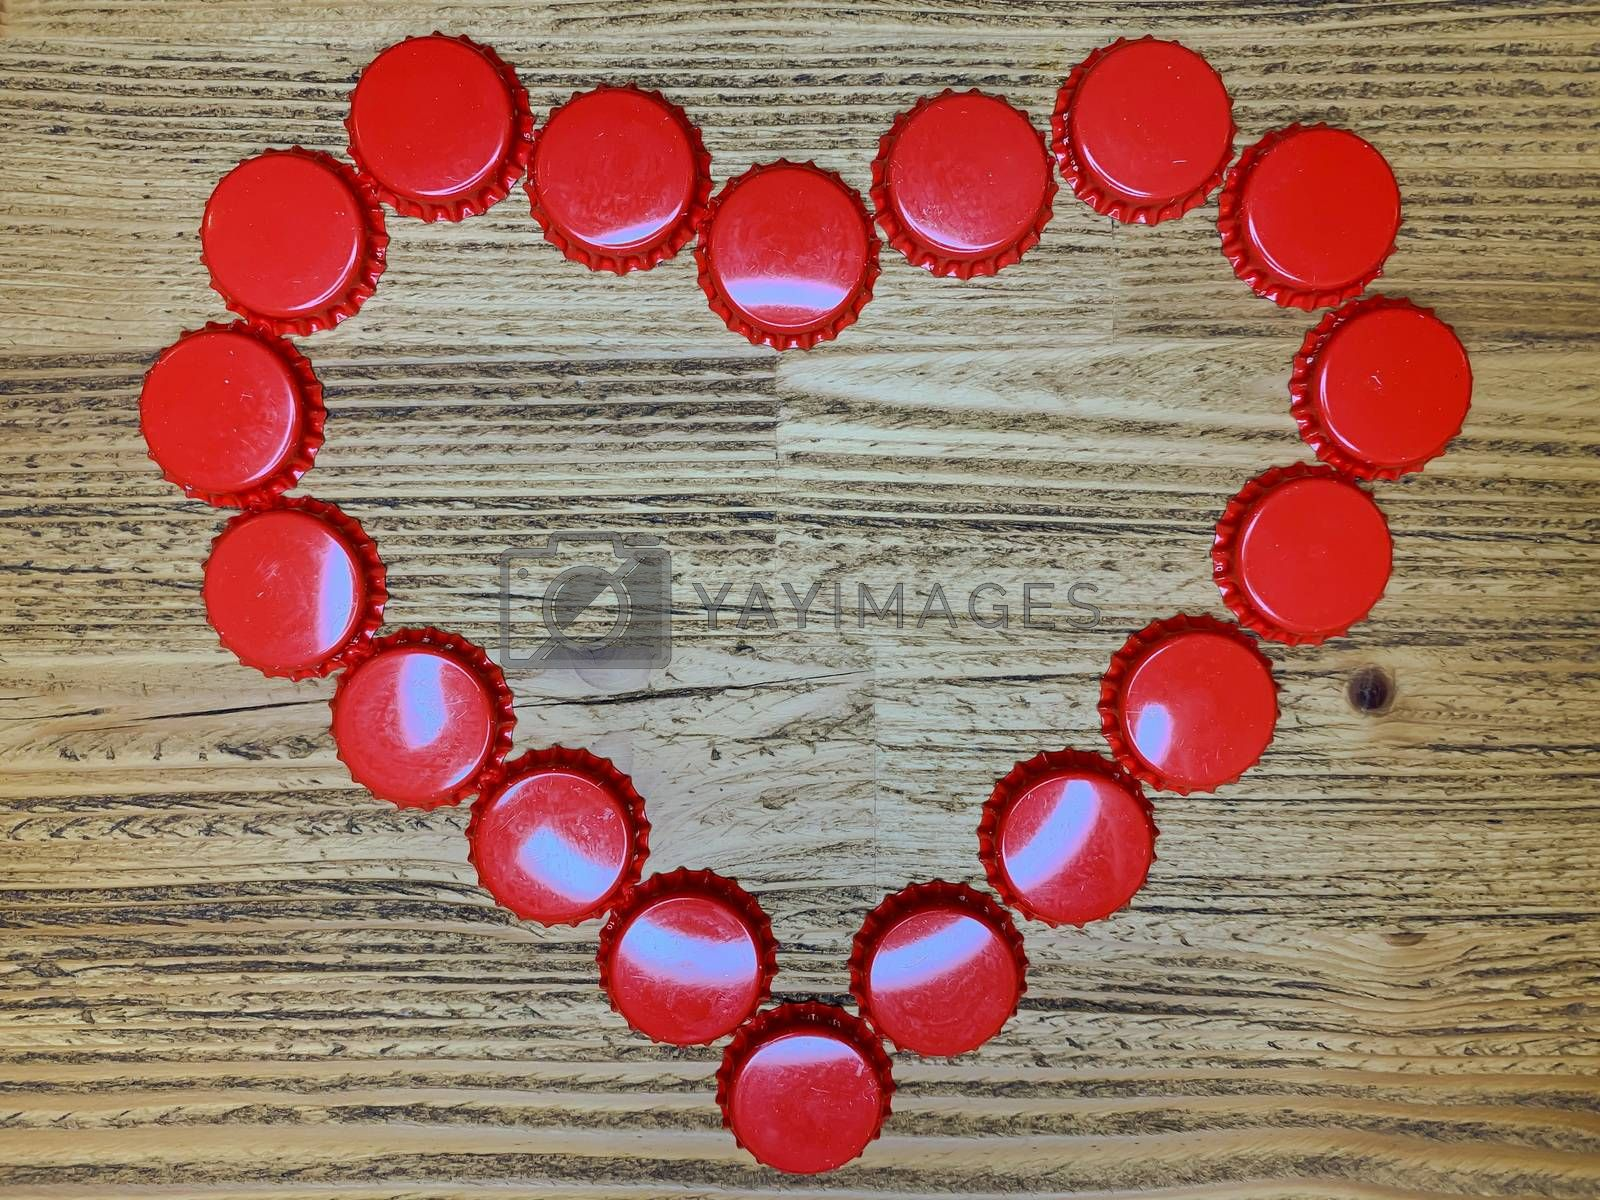 Red love heart made from beer bottle tops lids on a rustic wooden table. Beer drinkers Valentine's day concept, top view horizontal stock image.